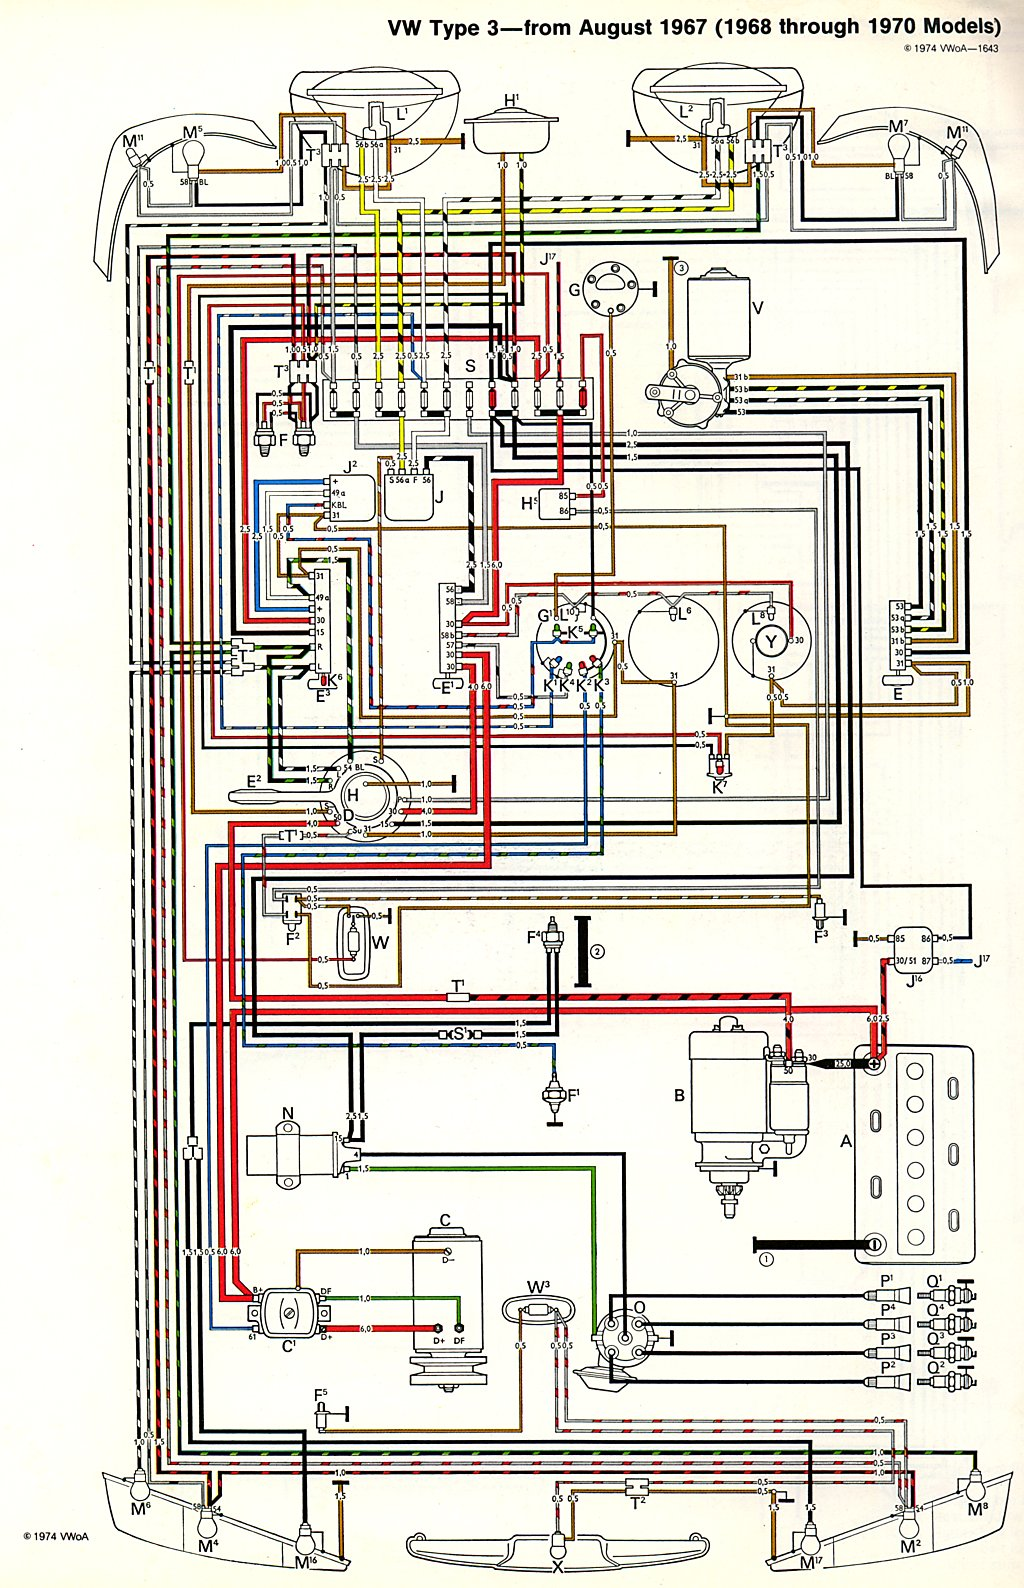 hight resolution of thesamba com type 3 wiring diagrams 1971 vw type 3 wiring diagram volkswagen type 3 wiring diagram